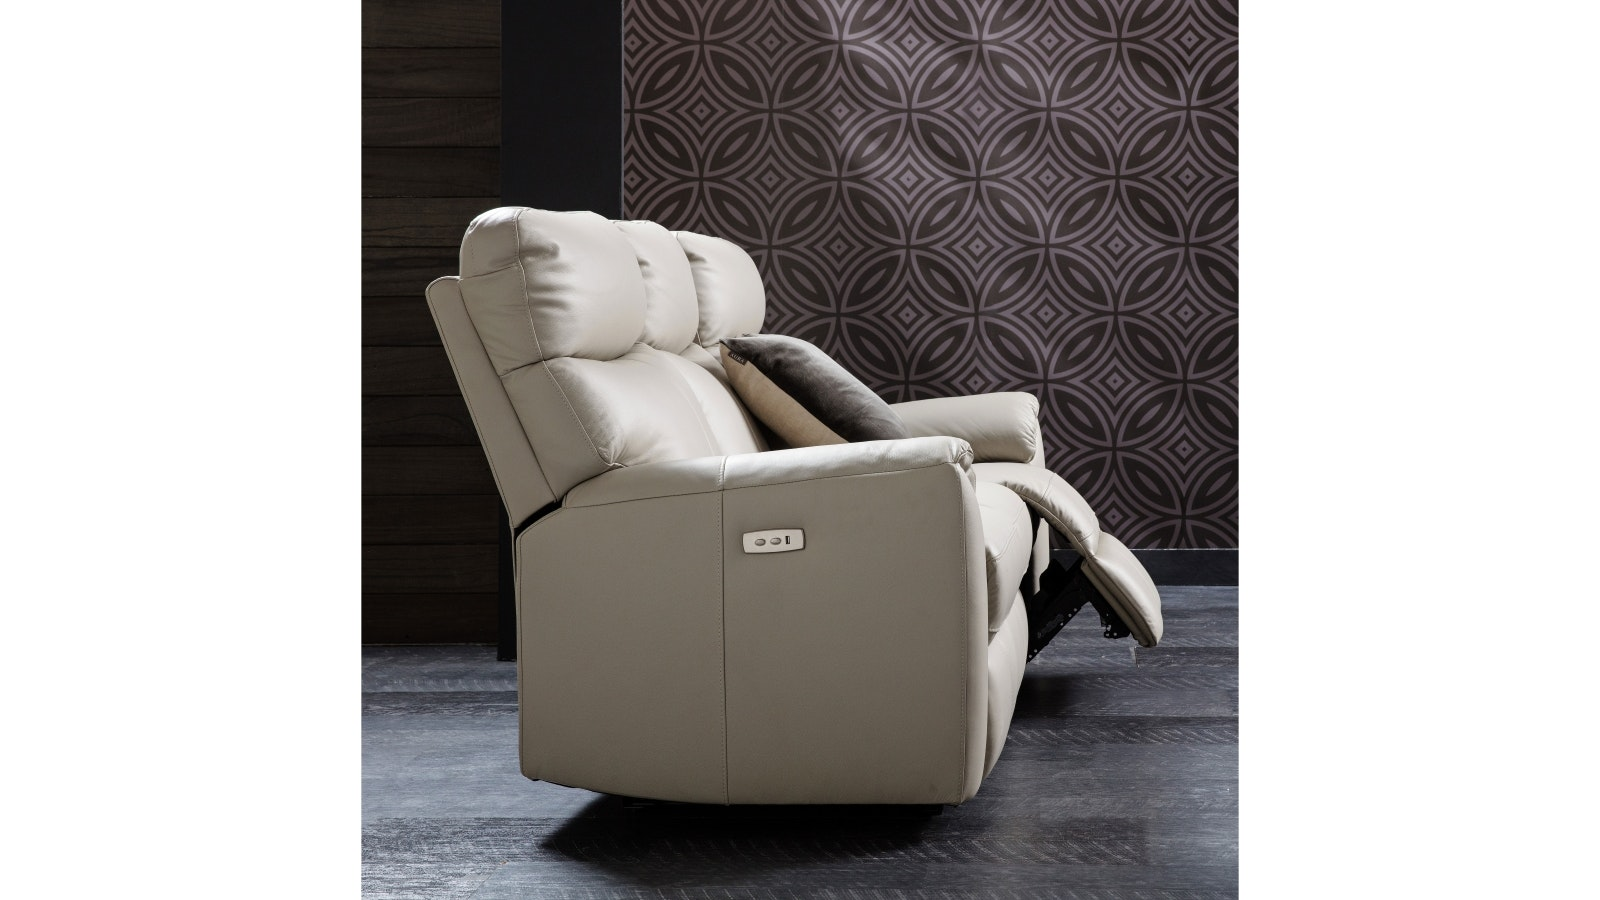 Montague Leather Sofa with Electric Reclining Actions